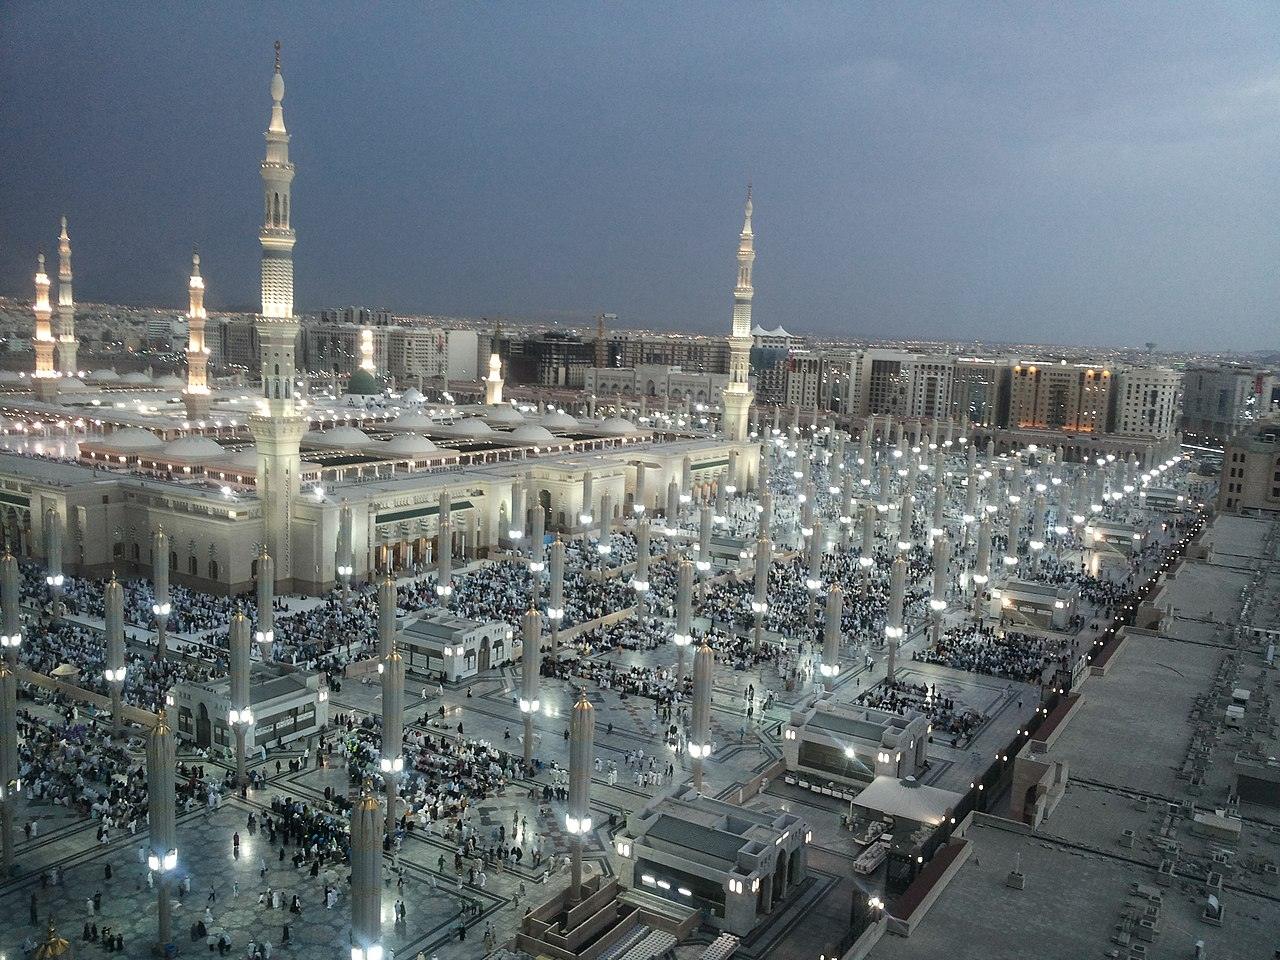 Al-Masjid an-Nabawi mosque